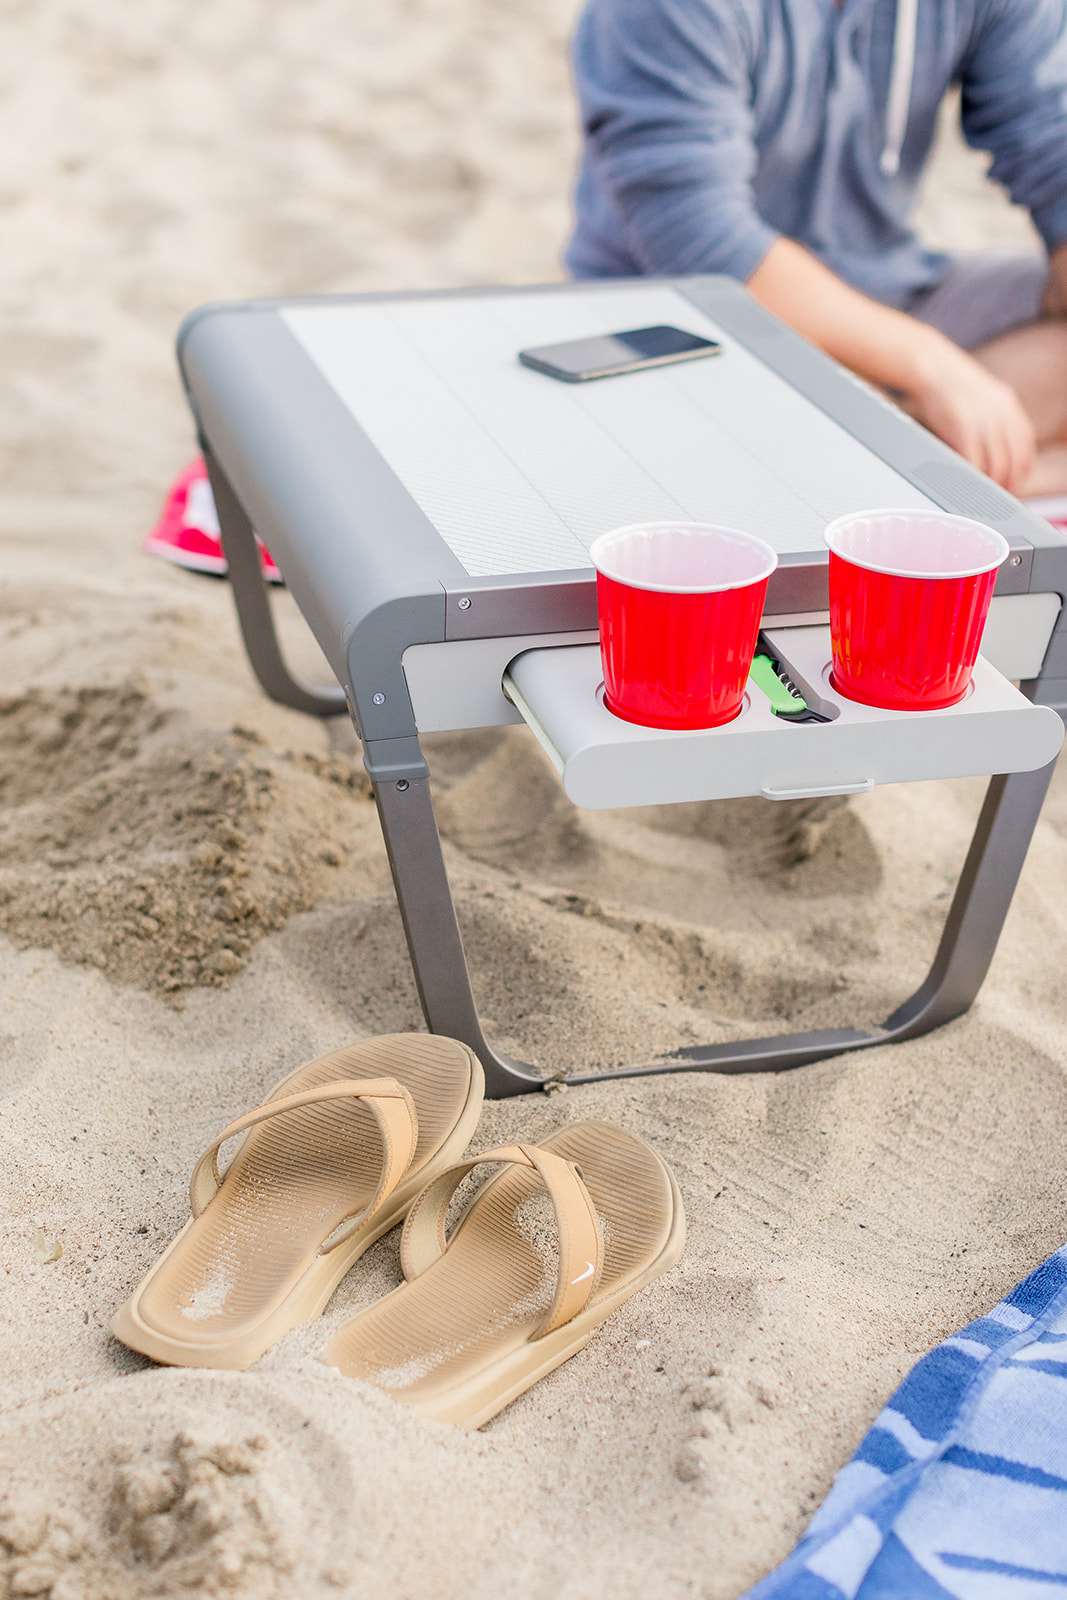 PorTable-Smart-Table-Product-Photos-286.jpg